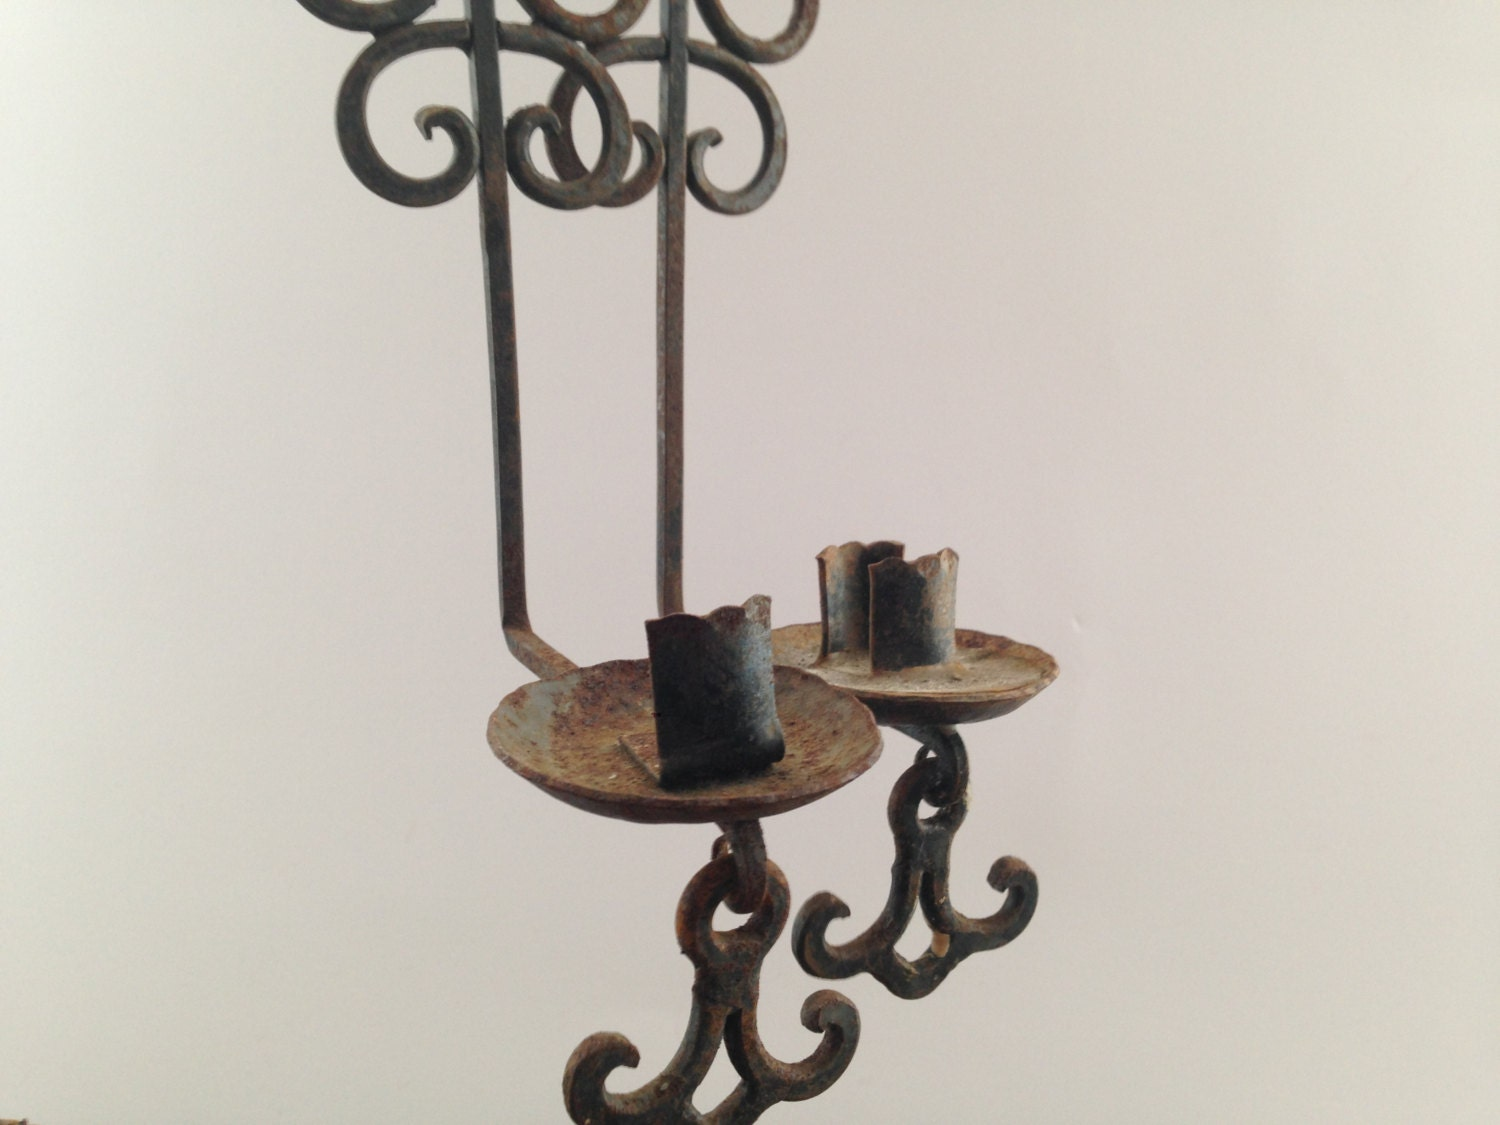 Iron Wall Sconces For Candles : Vintage wall sconces Set of 2 Black iron Wall Candle Holders